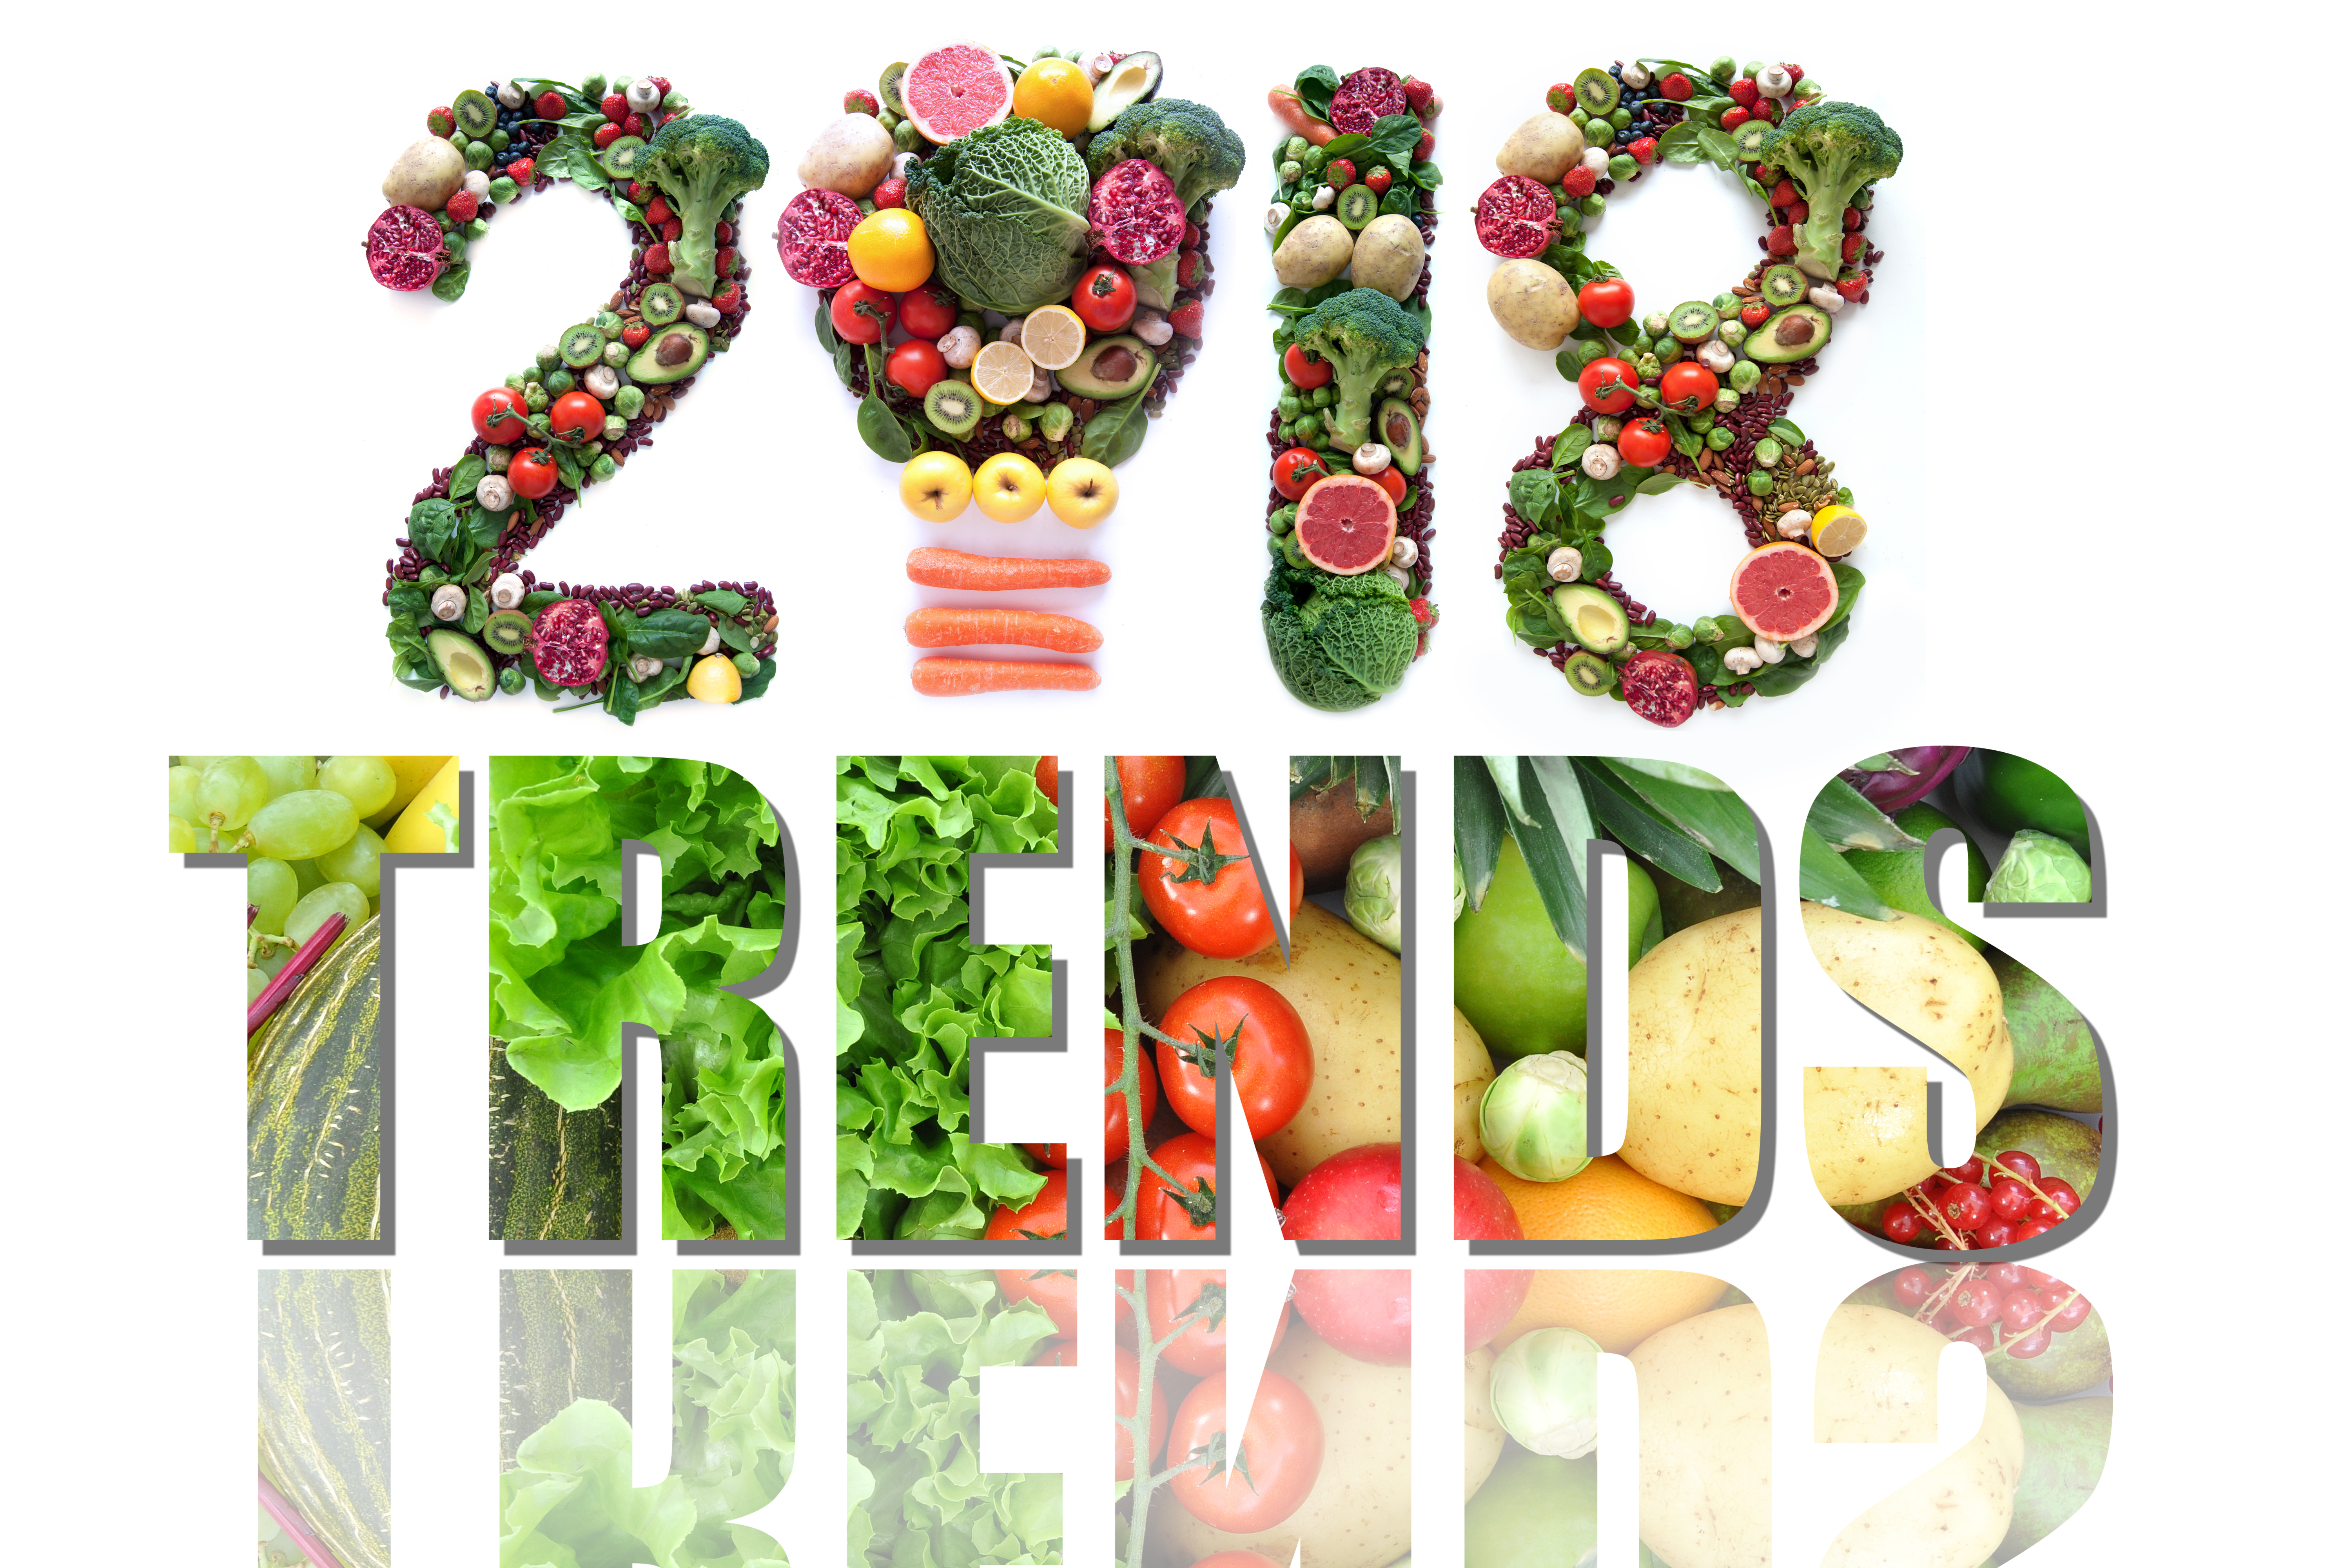 Food Trends: What's Next in 2018